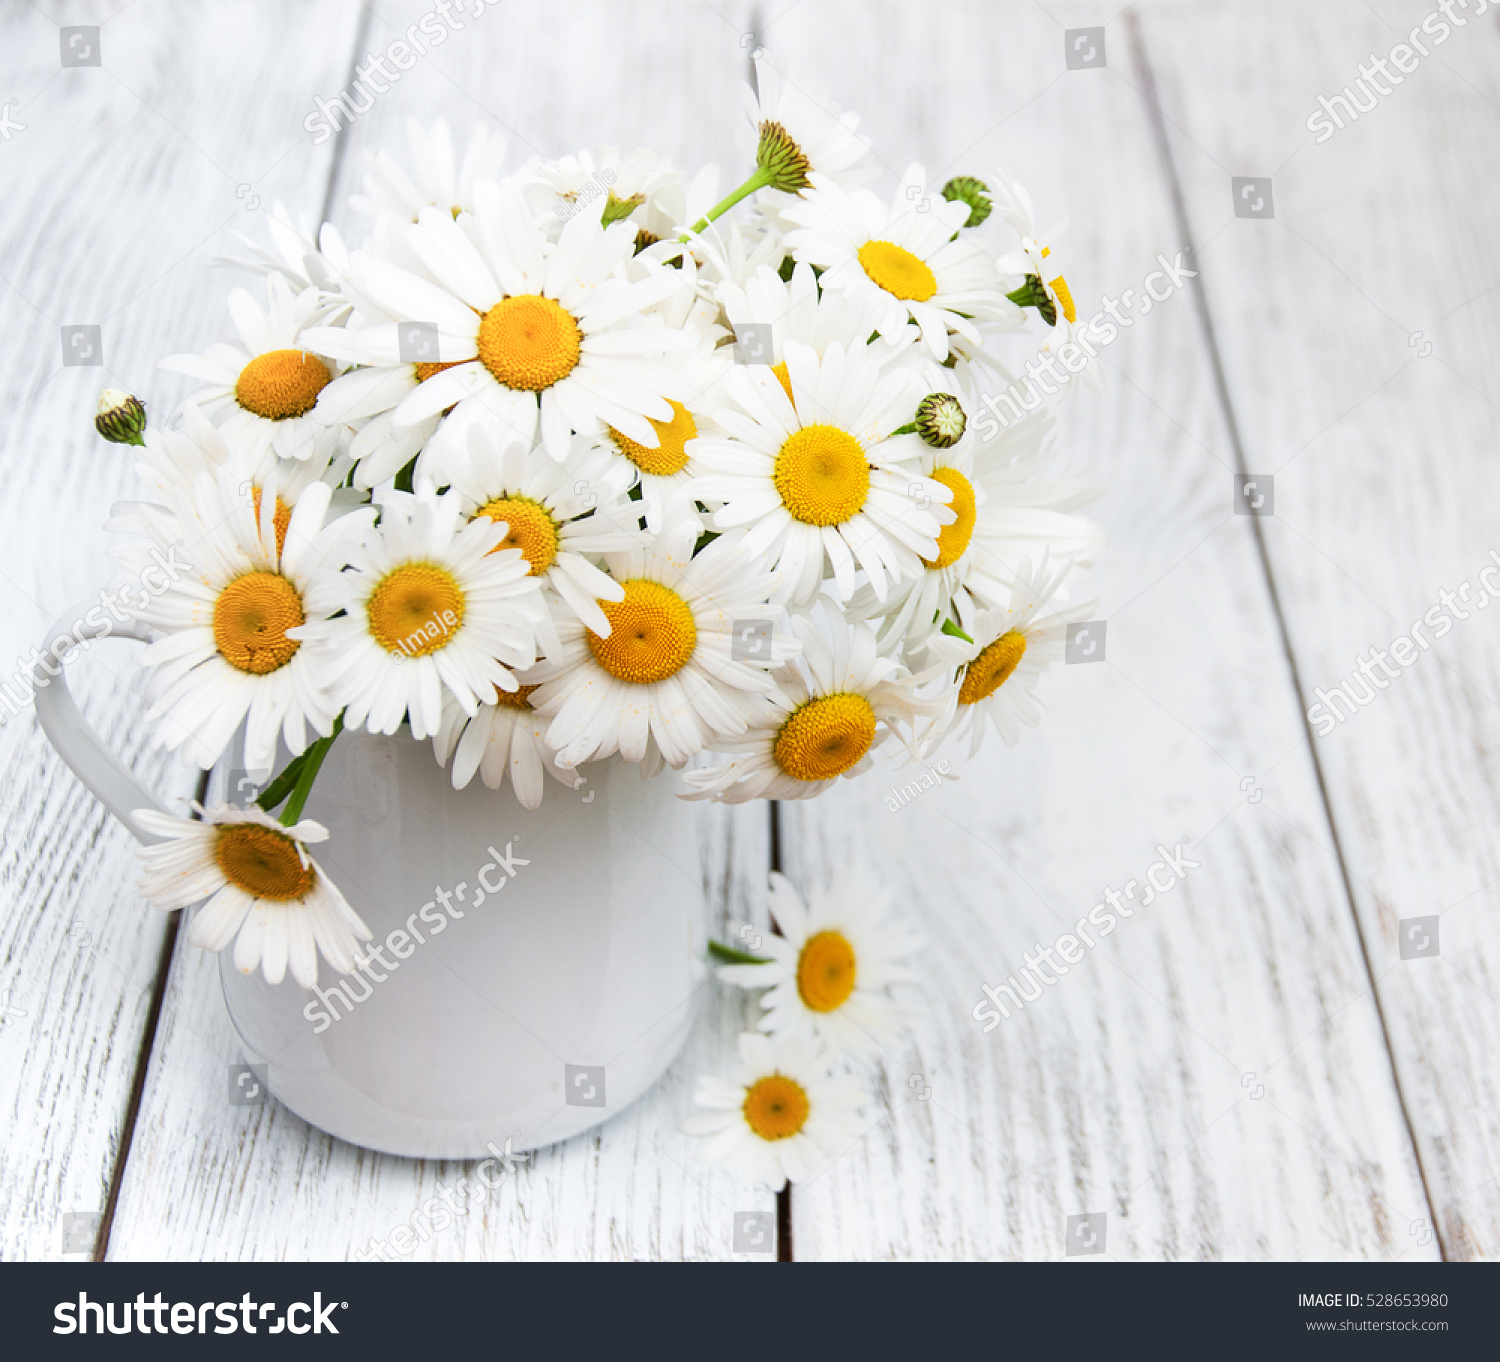 Daisies vase on old wooden table stock photo 528653980 shutterstock daisies in vase on a old wooden table reviewsmspy